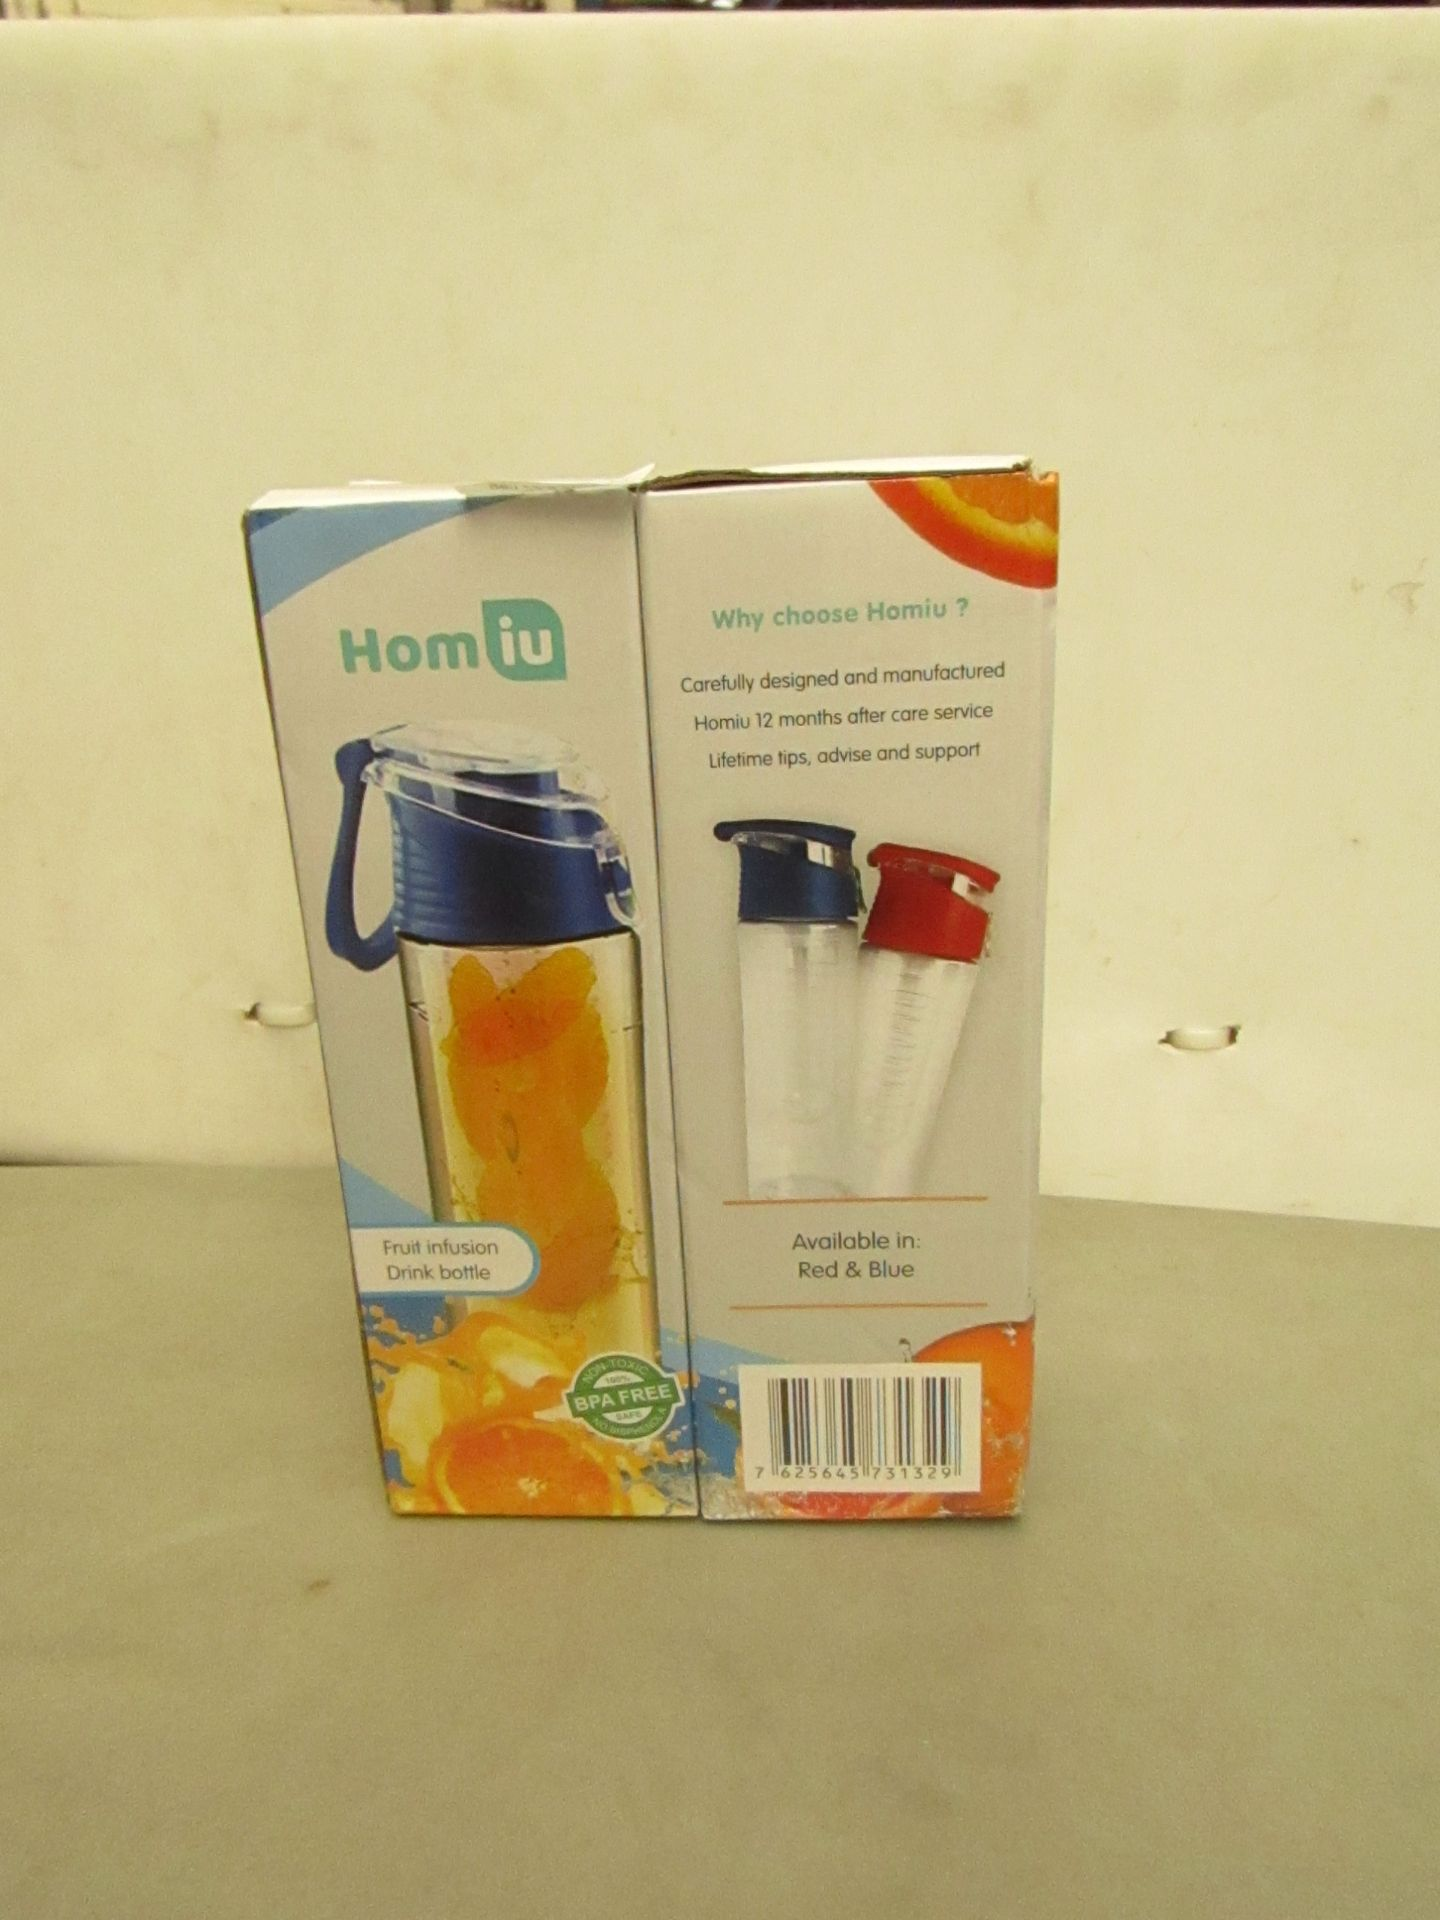 Lotto 14 - 2 x Homiu Fruit Infusion Drink Bottles Boxed and Unchecked